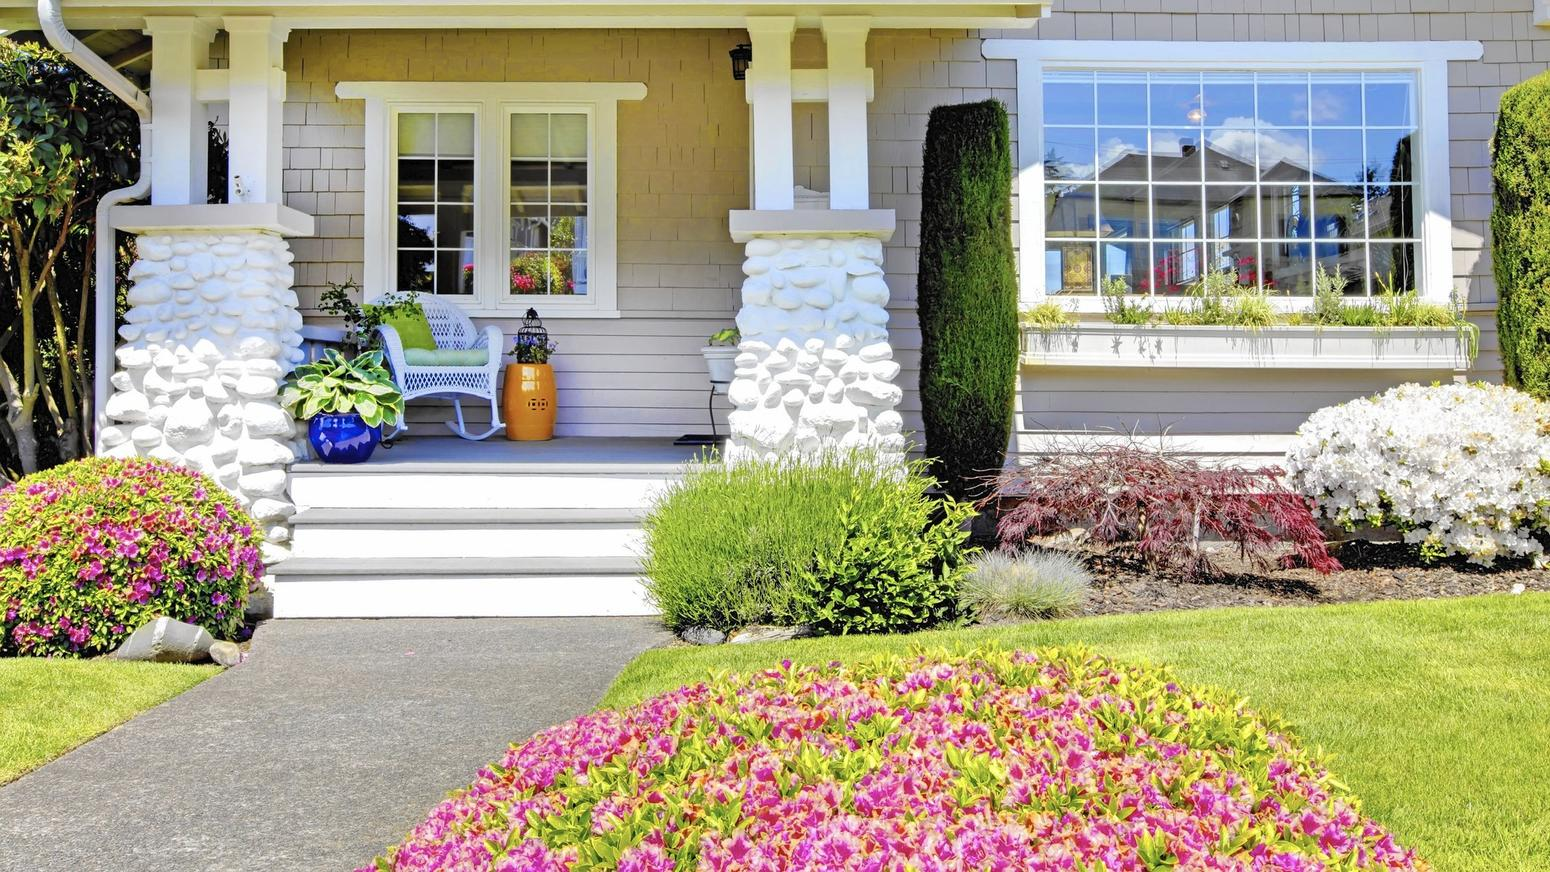 Curb Appeal Landscaping Ideas For A House With Flat Roof